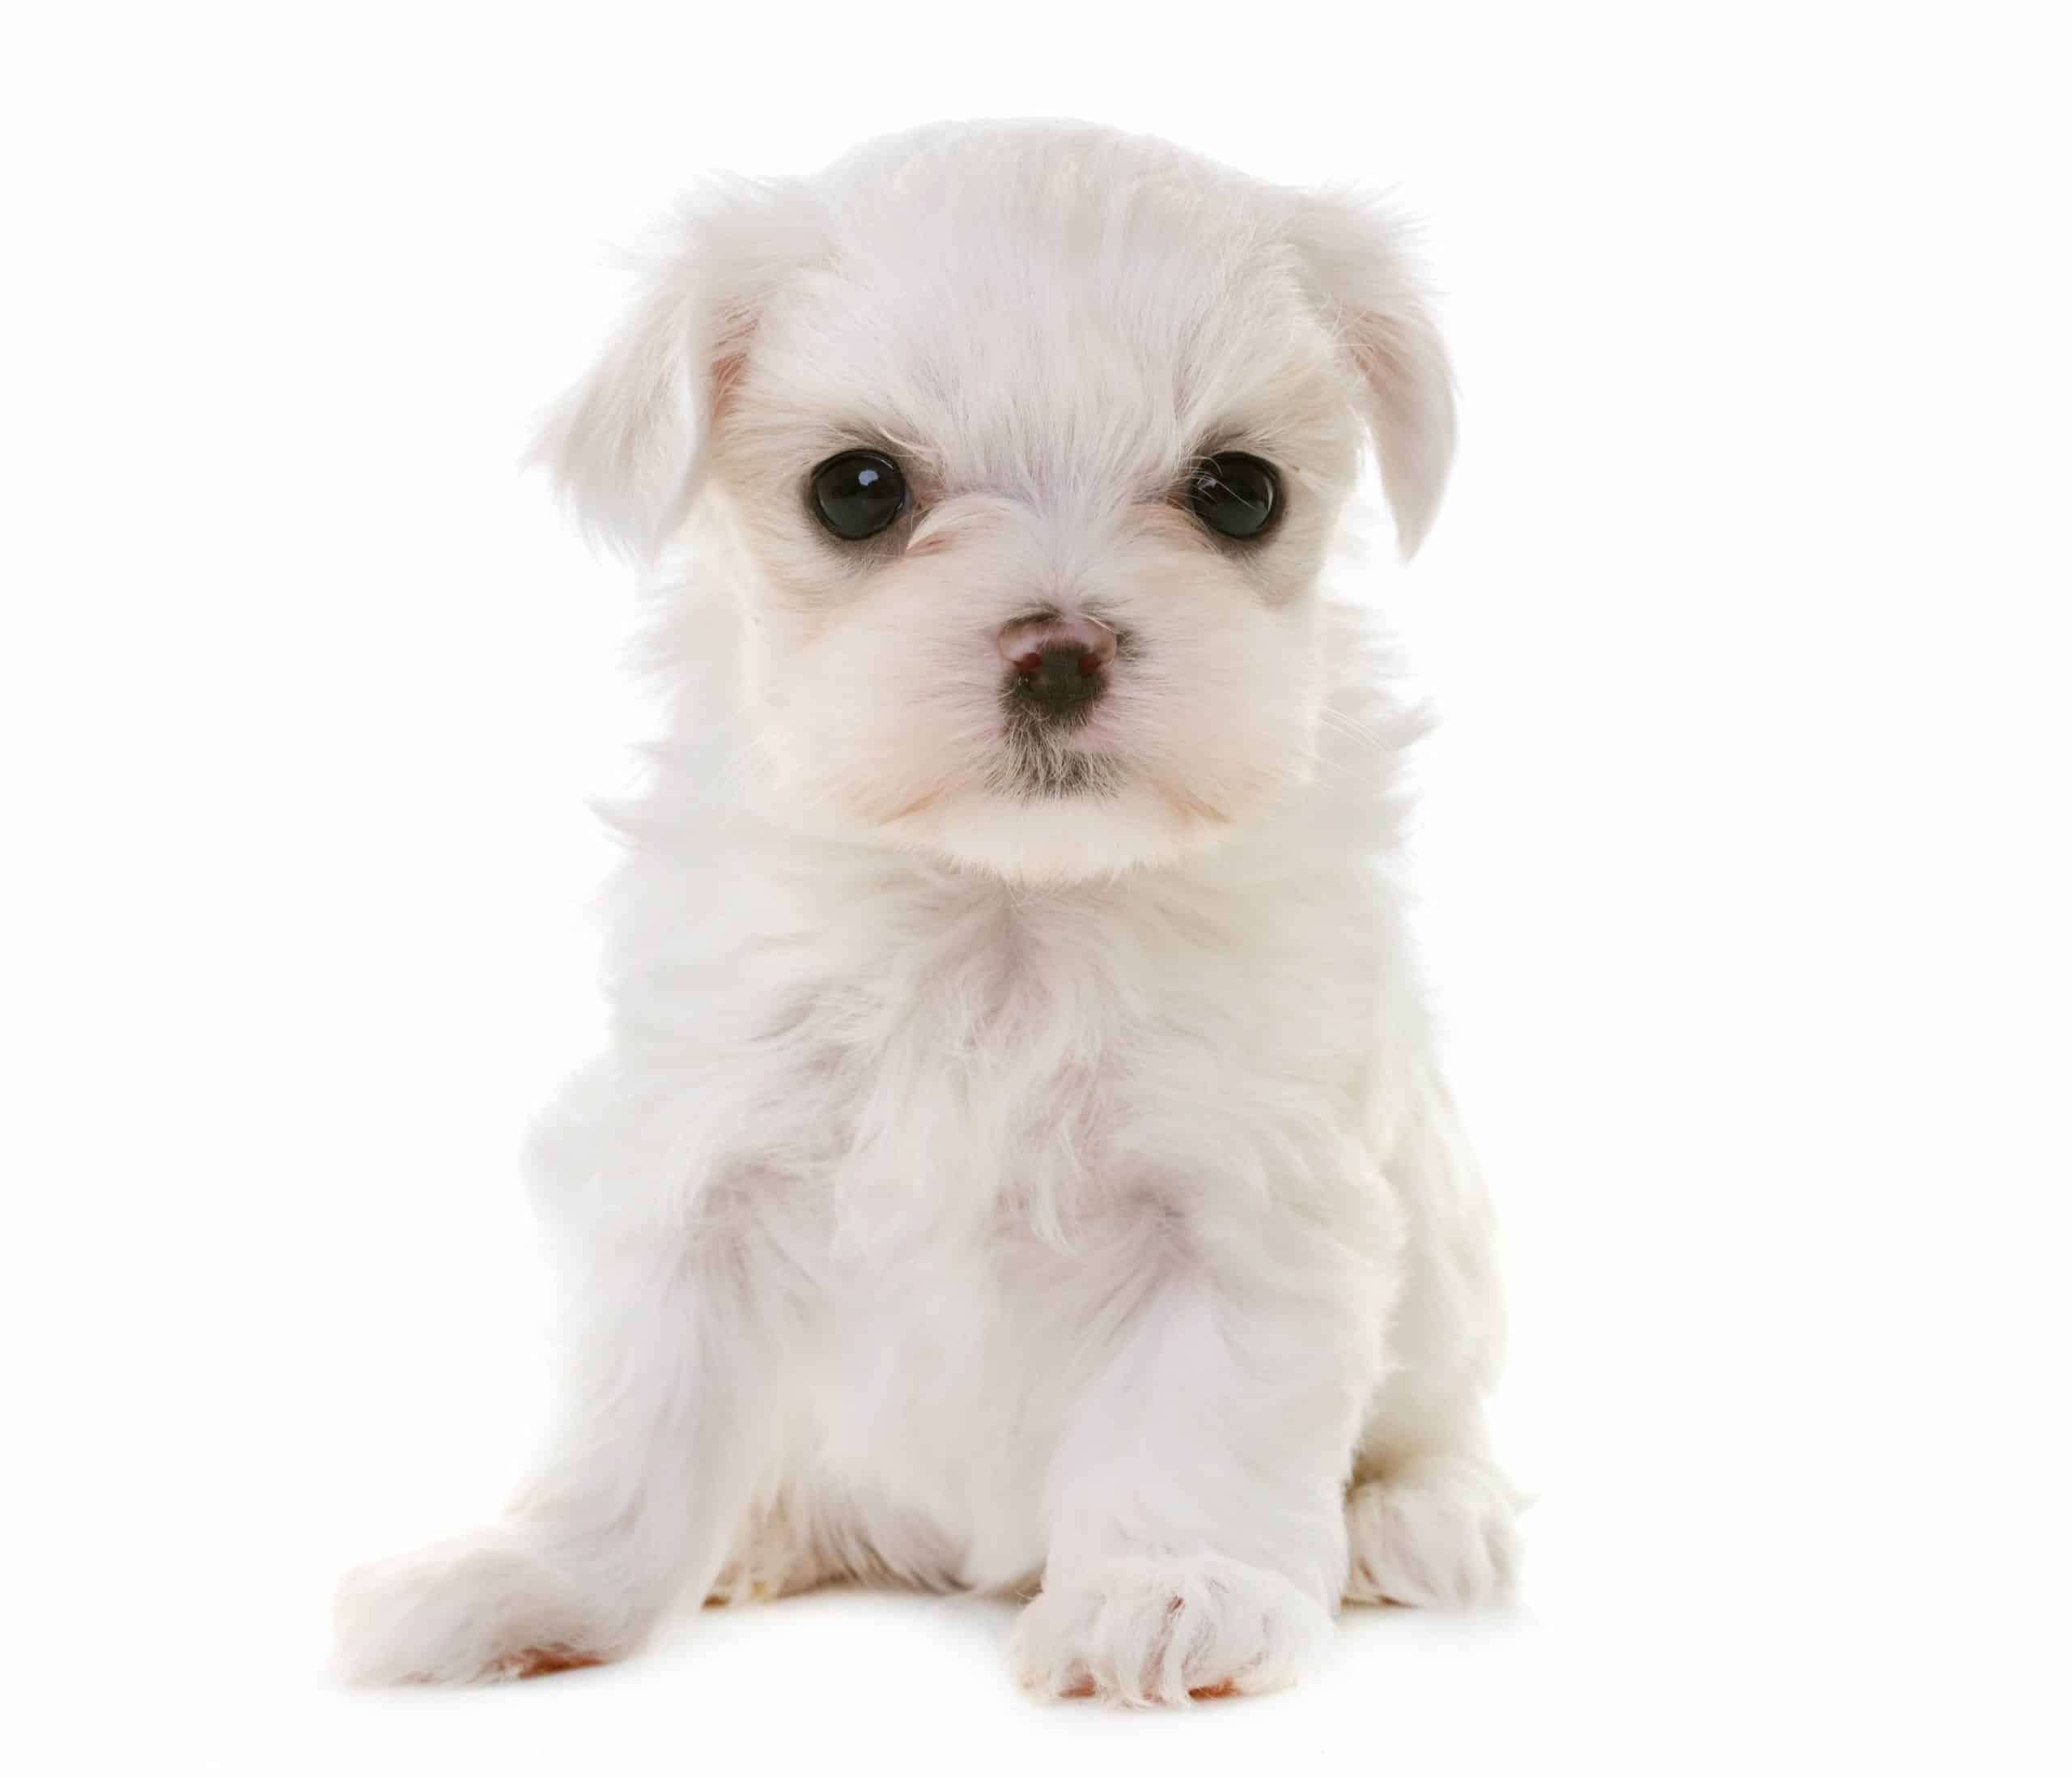 The Maltese terrier is considered a non-shedding breed.